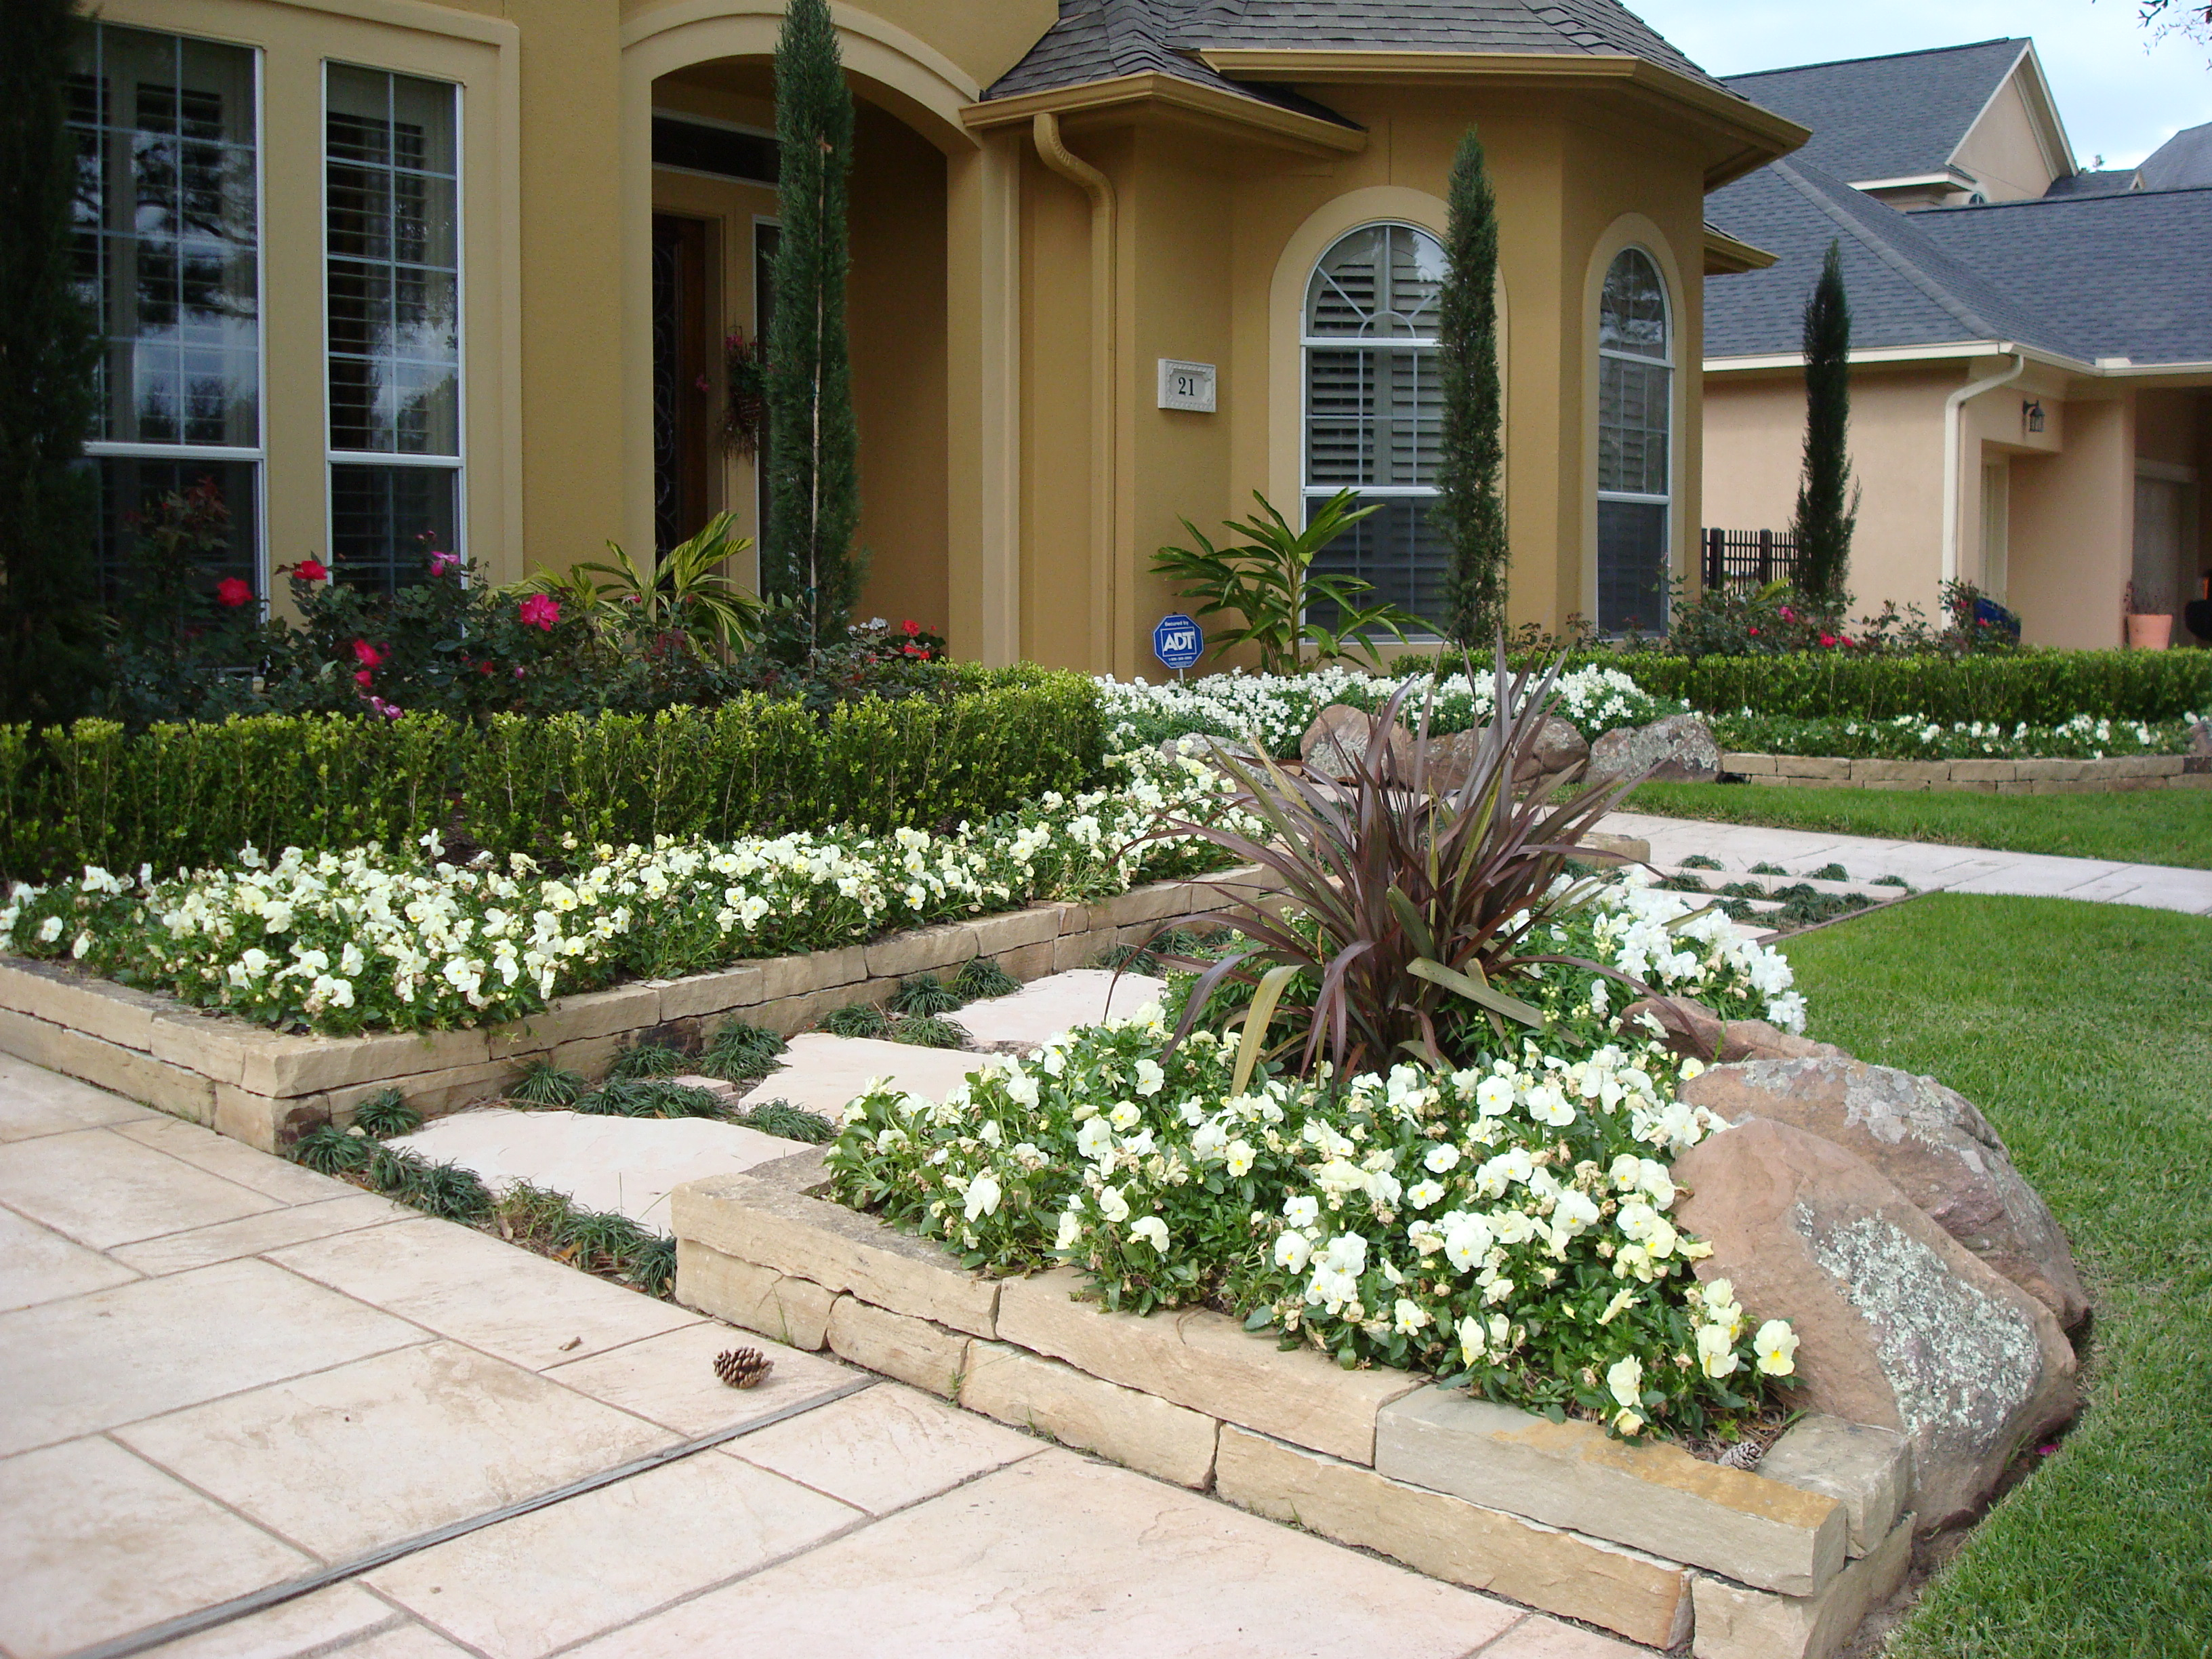 landscaping_31